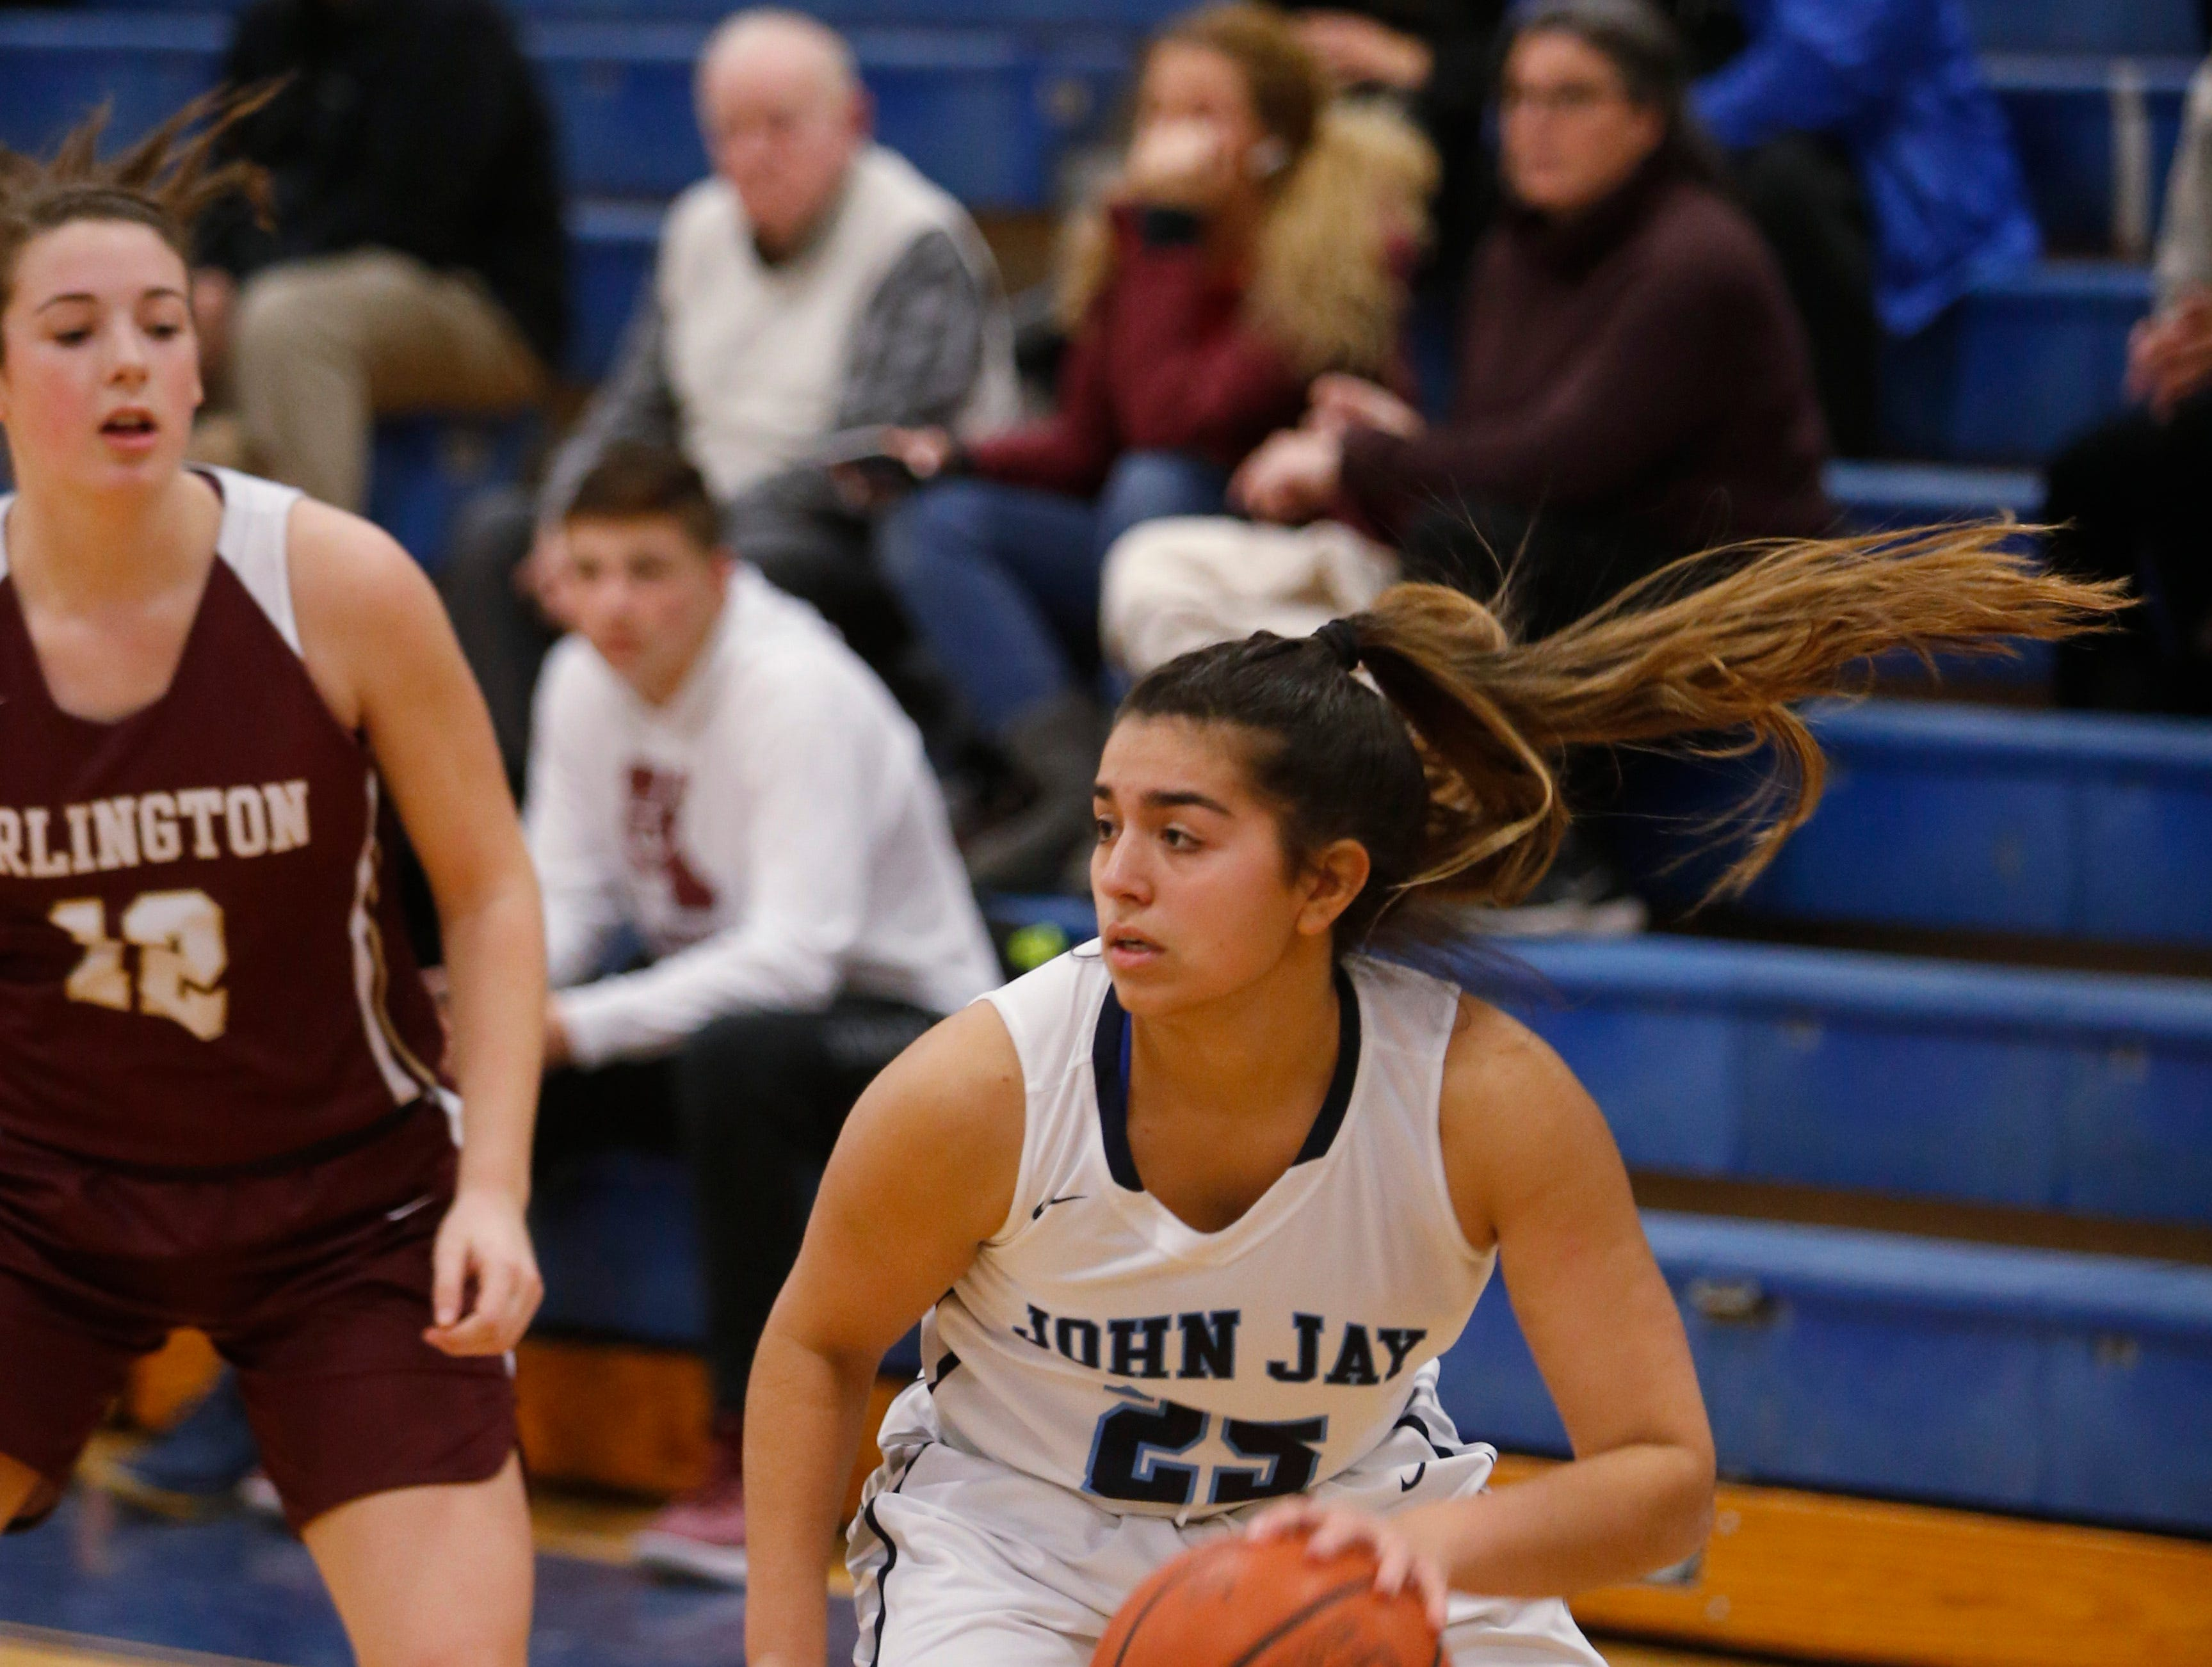 Action from Wednesday's game between John Jay and Arlington in Wiccopee on January 23, 2019.